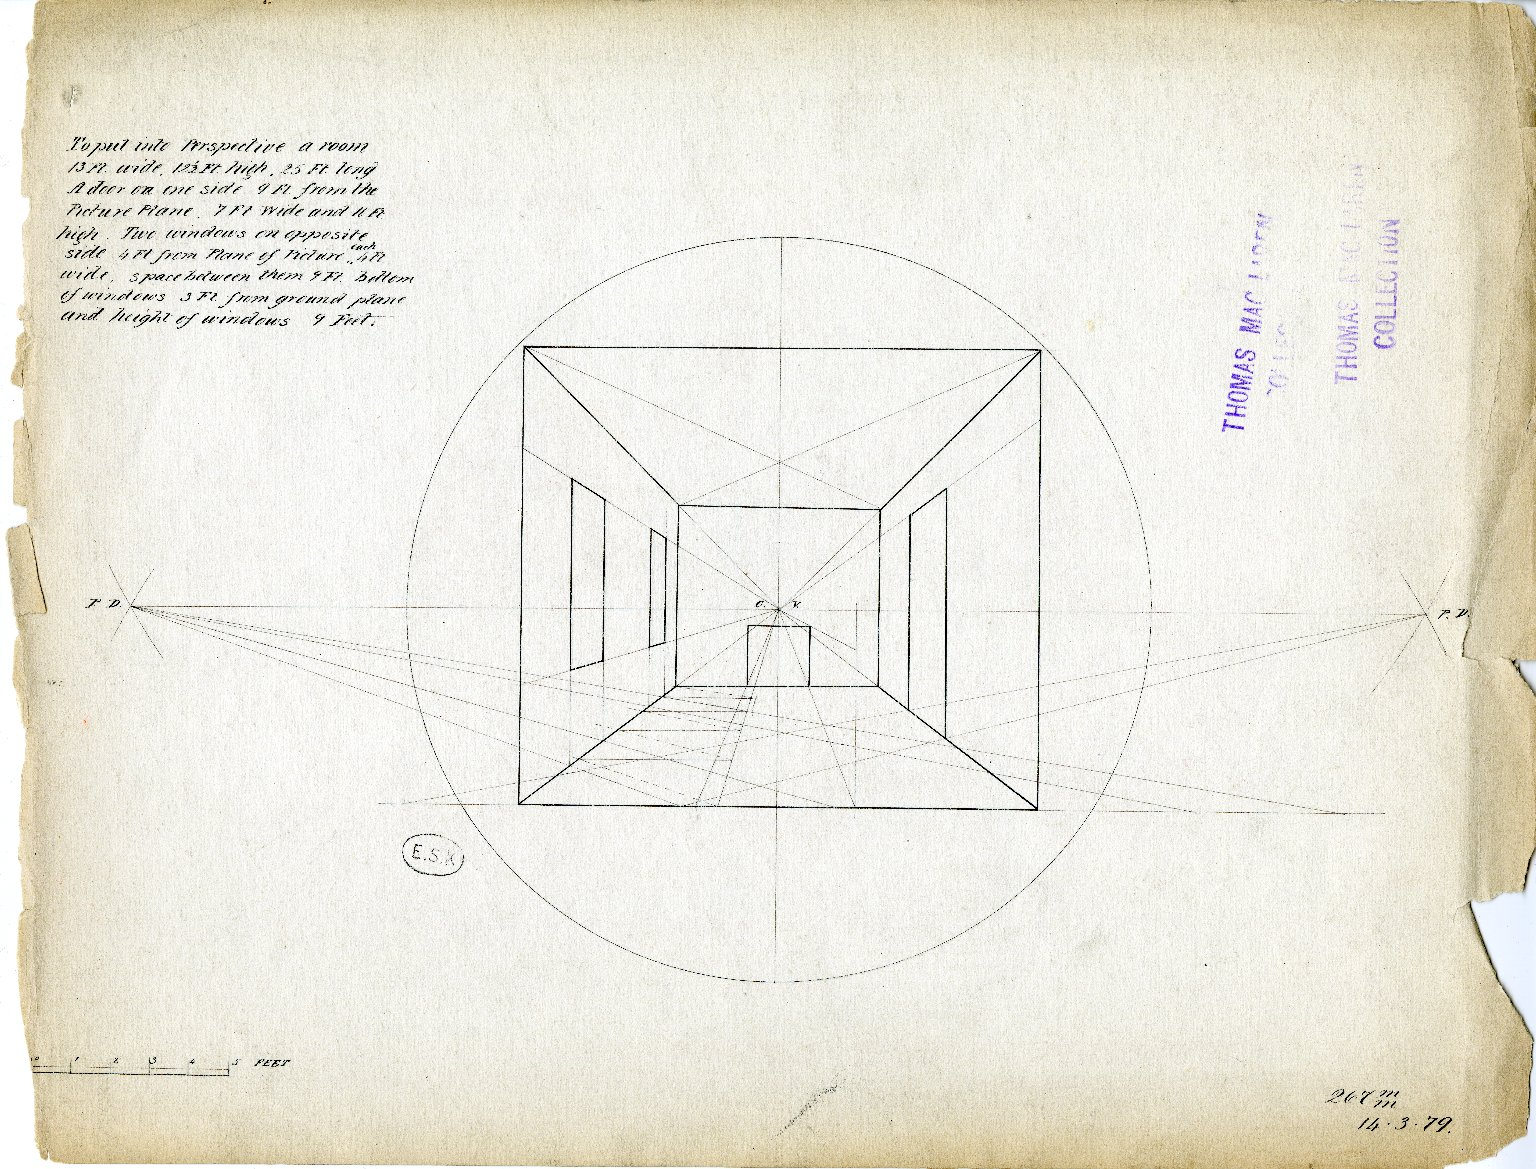 Perspective drawing of unidentified room